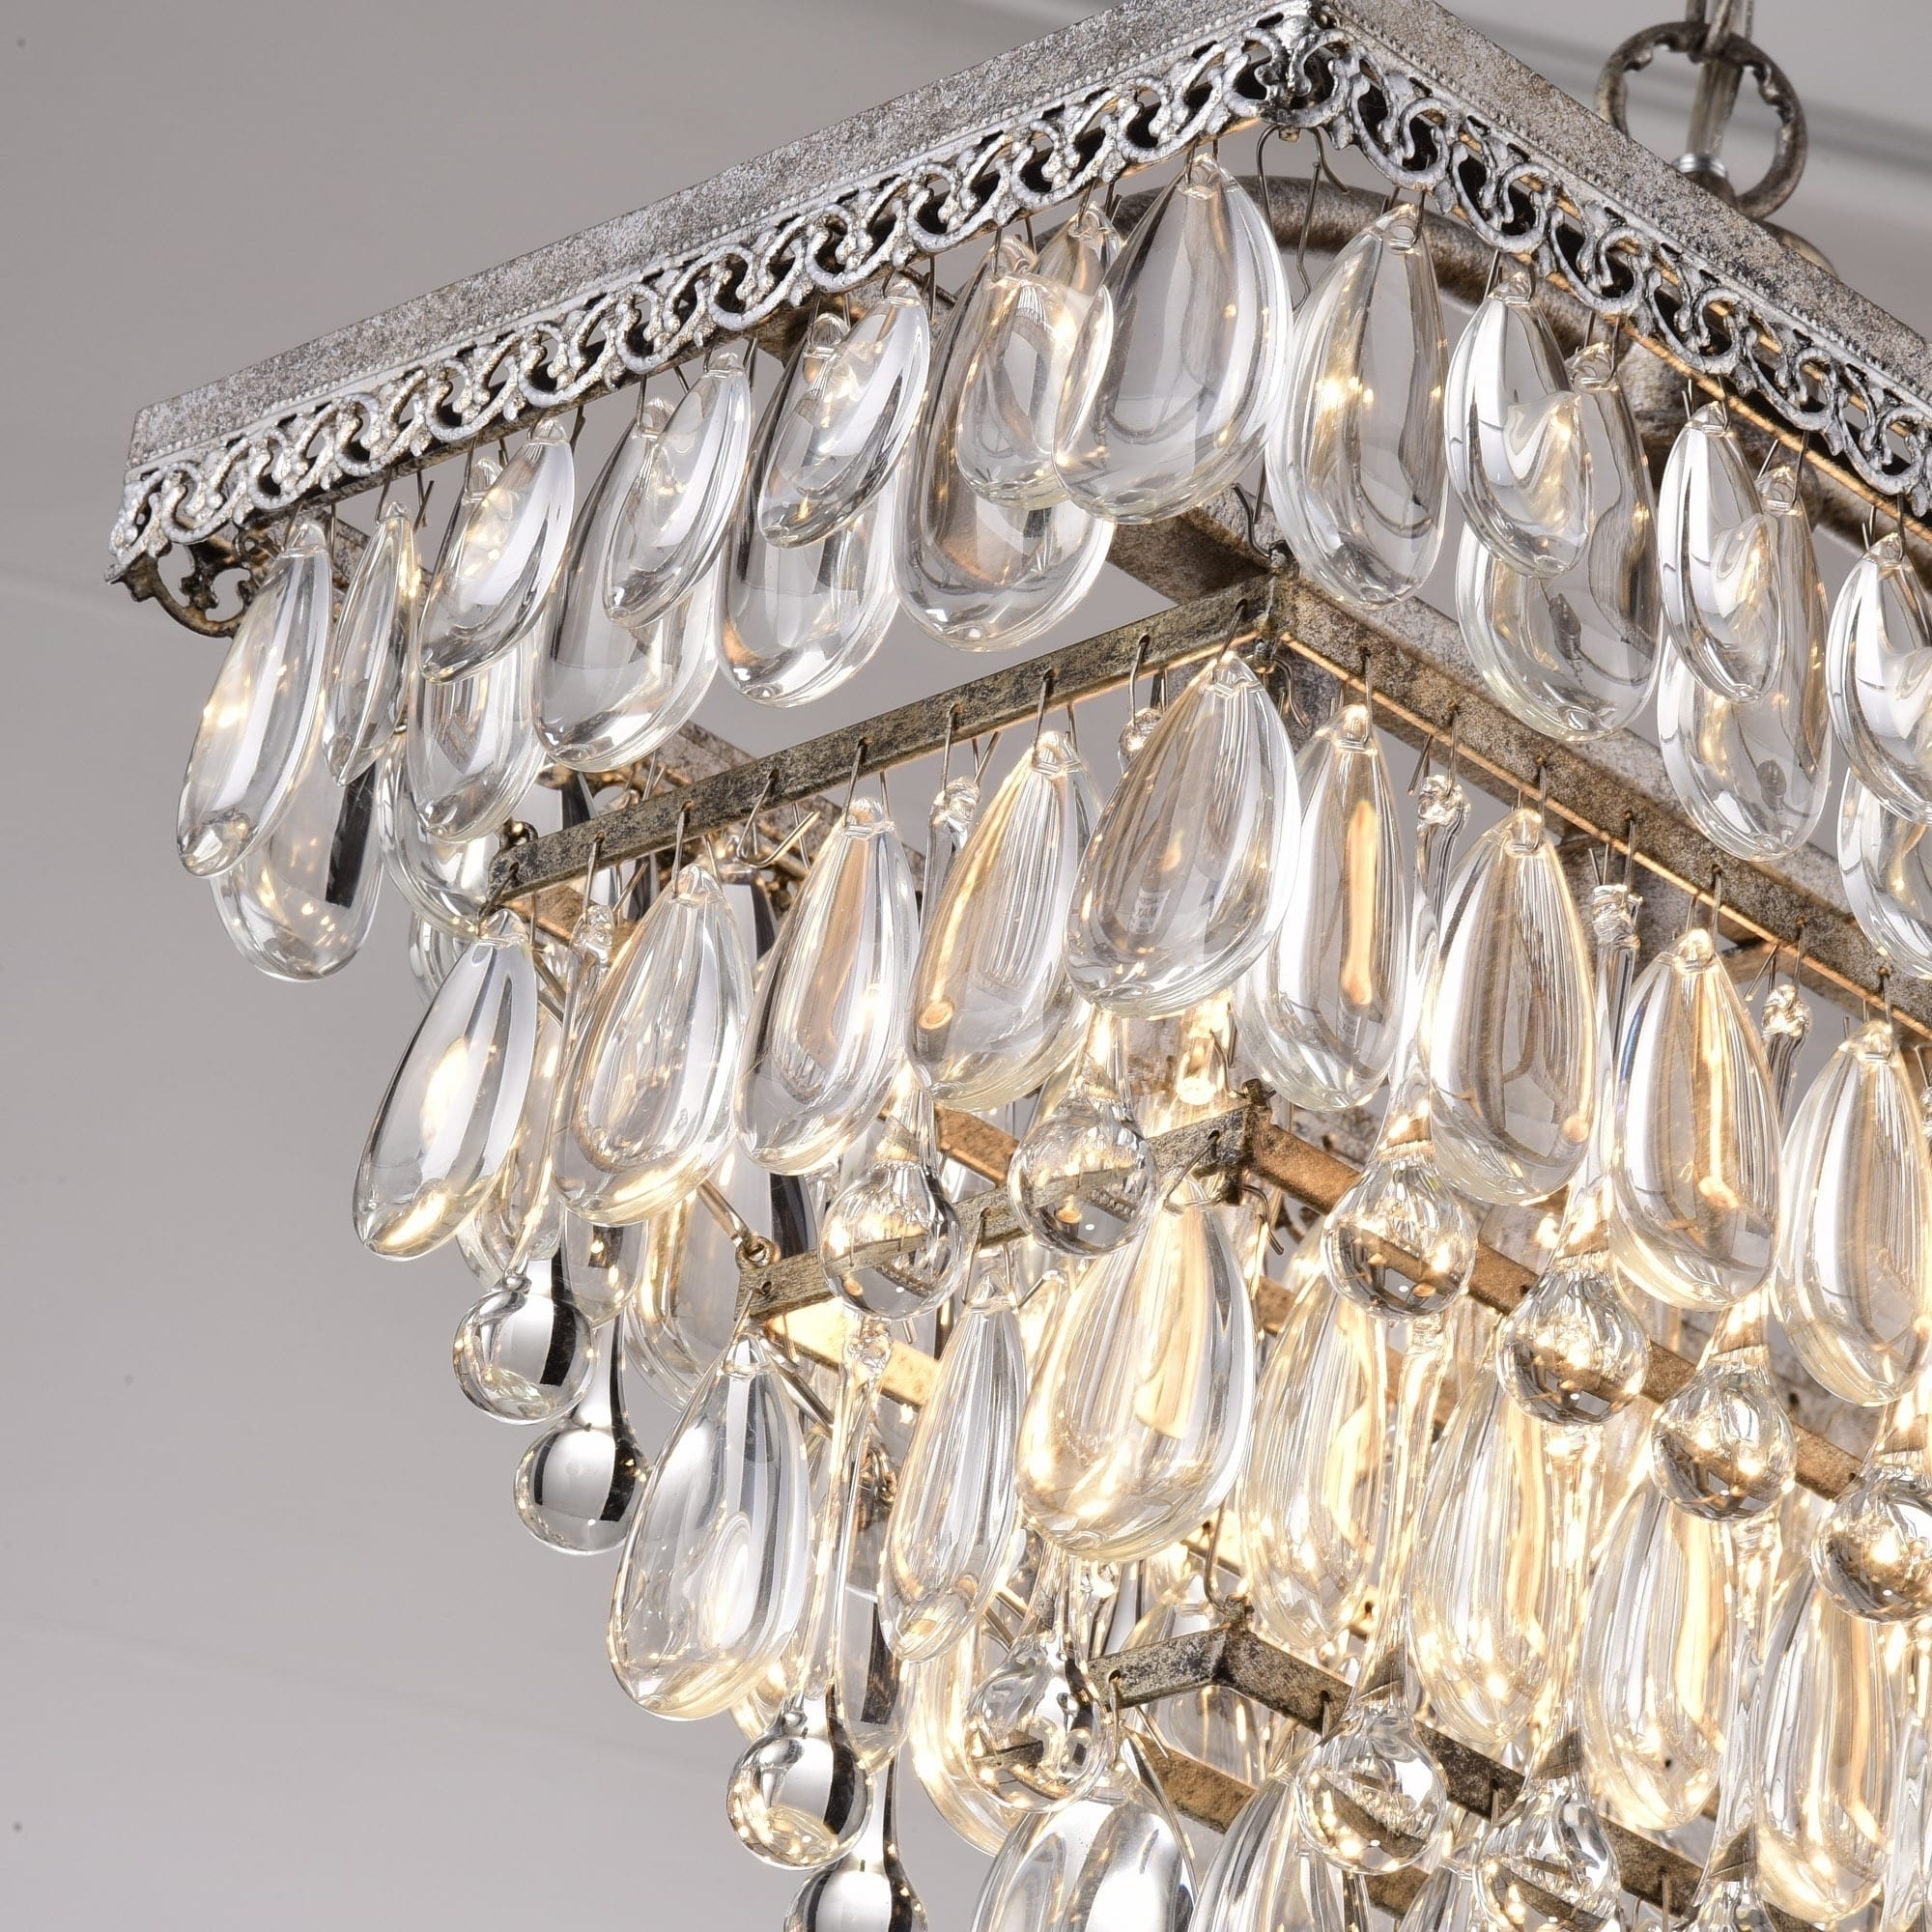 Silver Orchid Taylor Antique Silver 6 Light Rectangular Glass With Preferred Glass Droplet Chandelier (View 20 of 20)